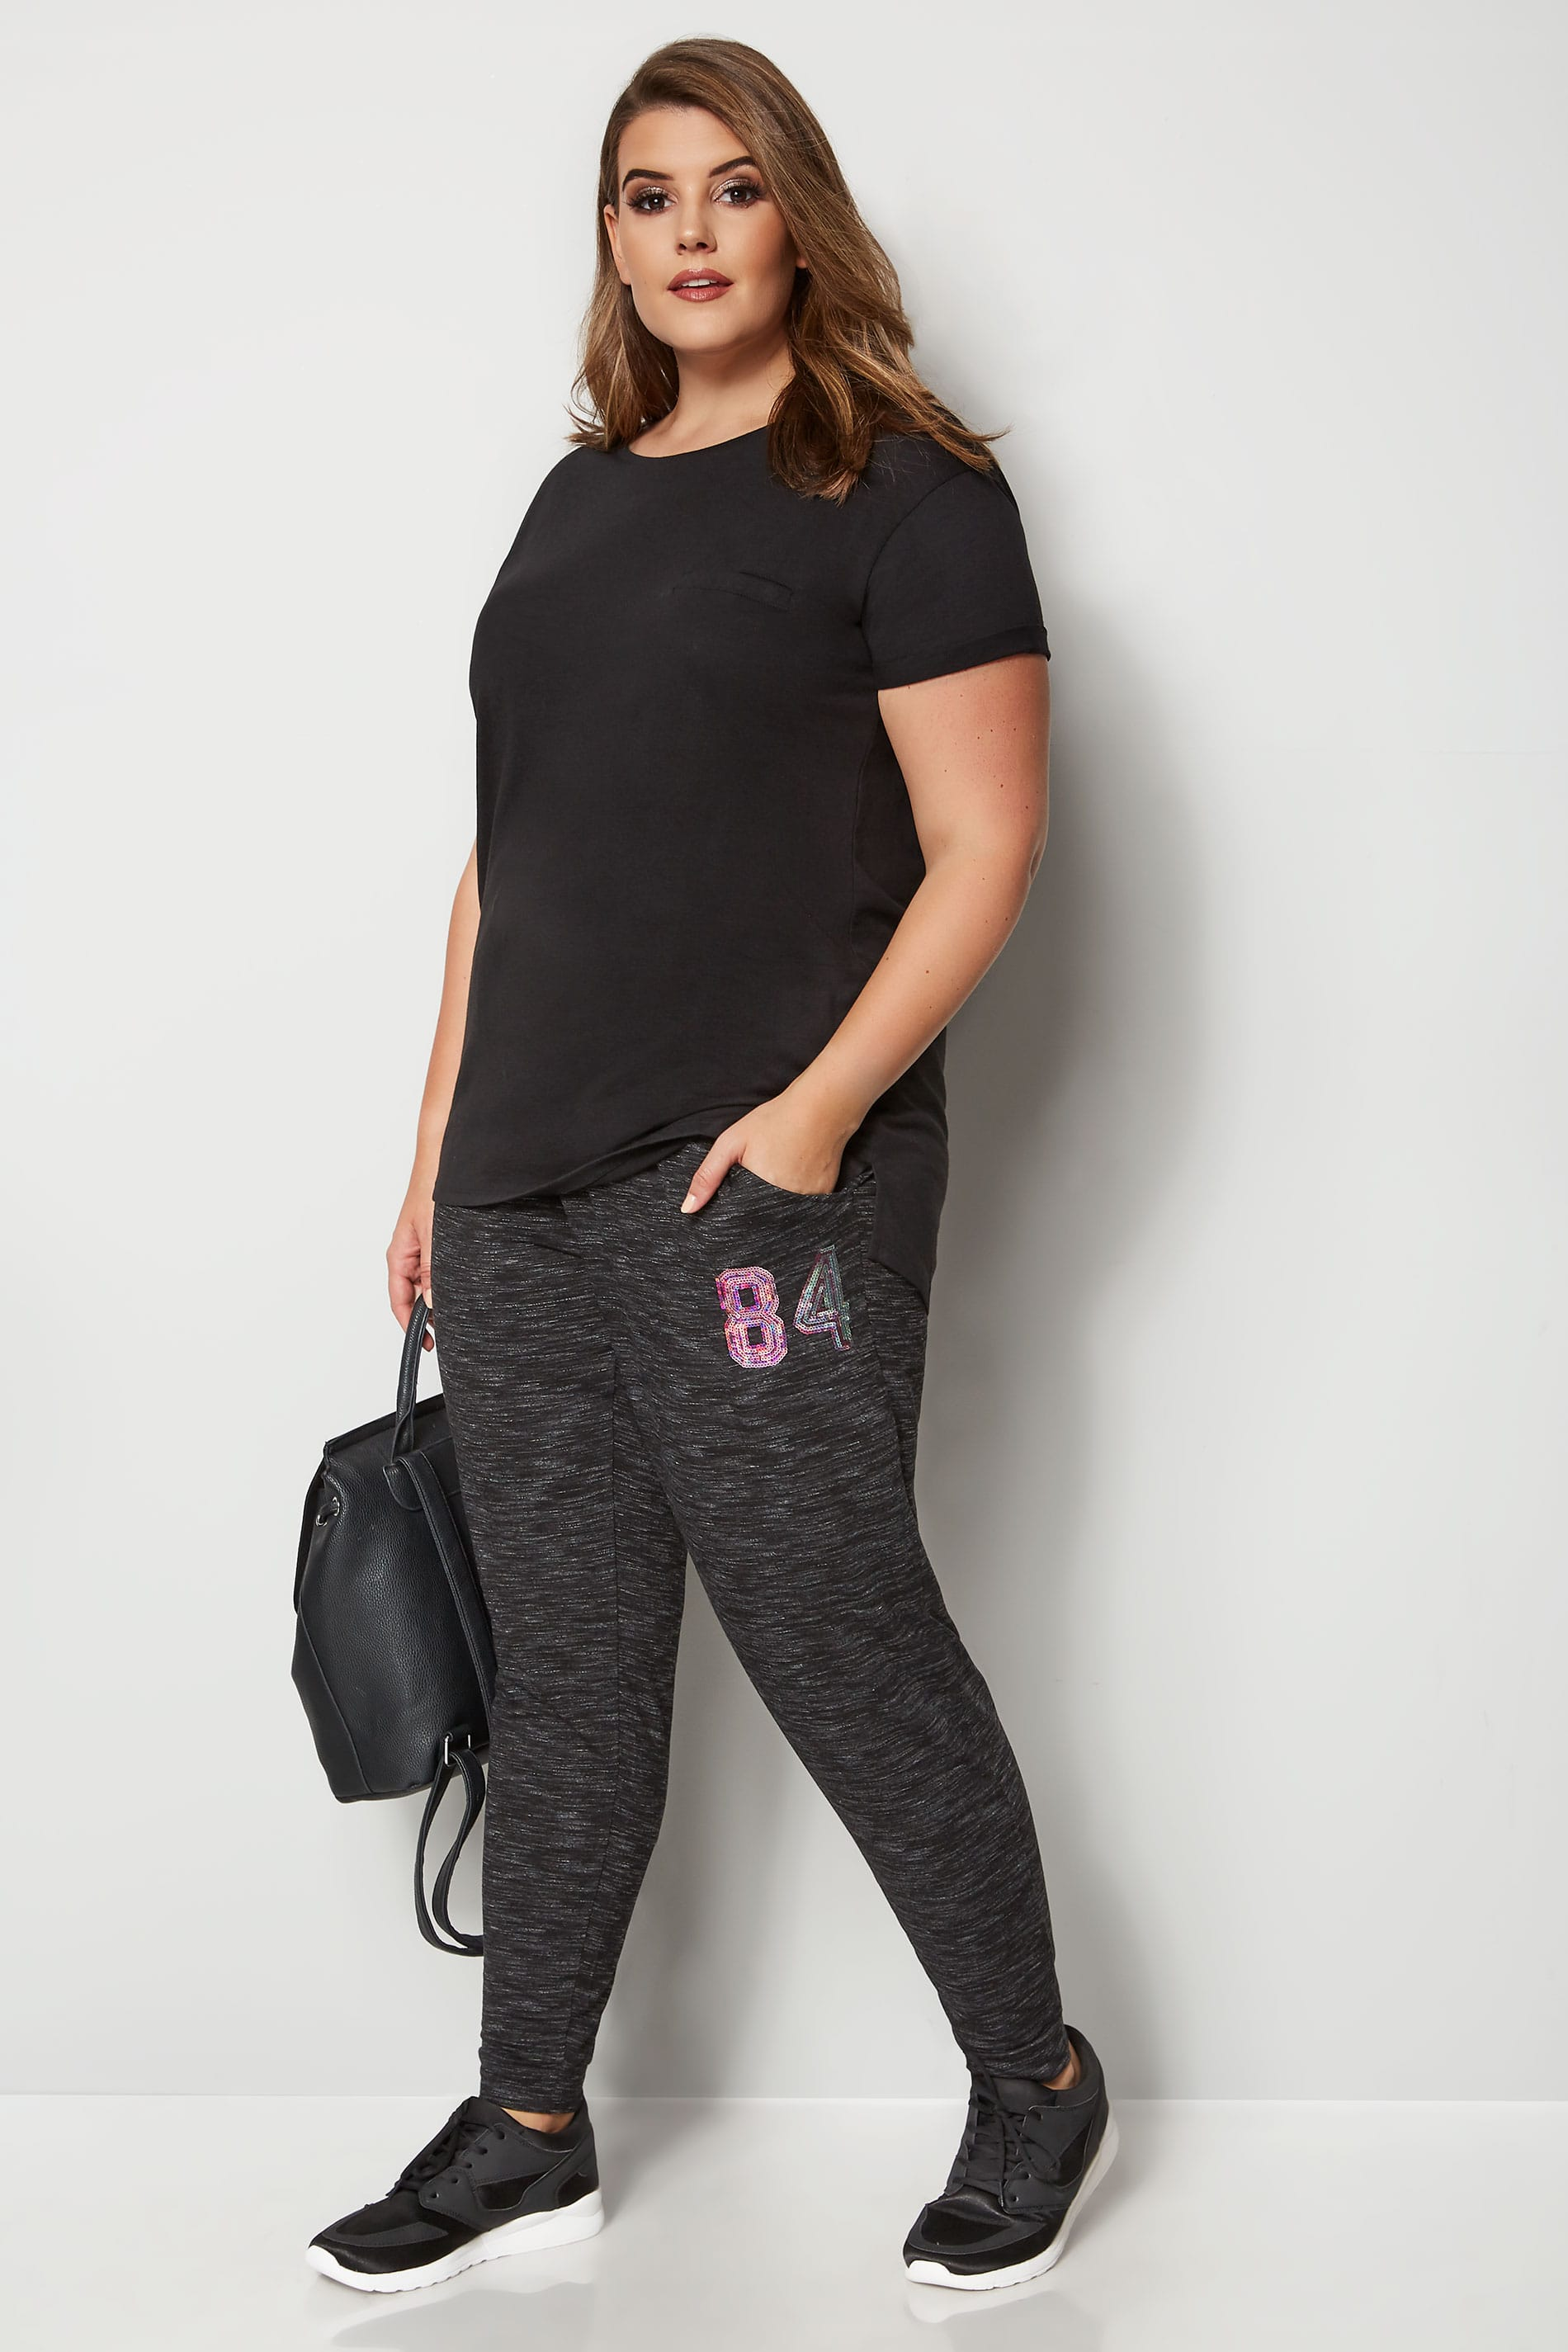 Black Sequin Joggers Plus Size 16 To 36